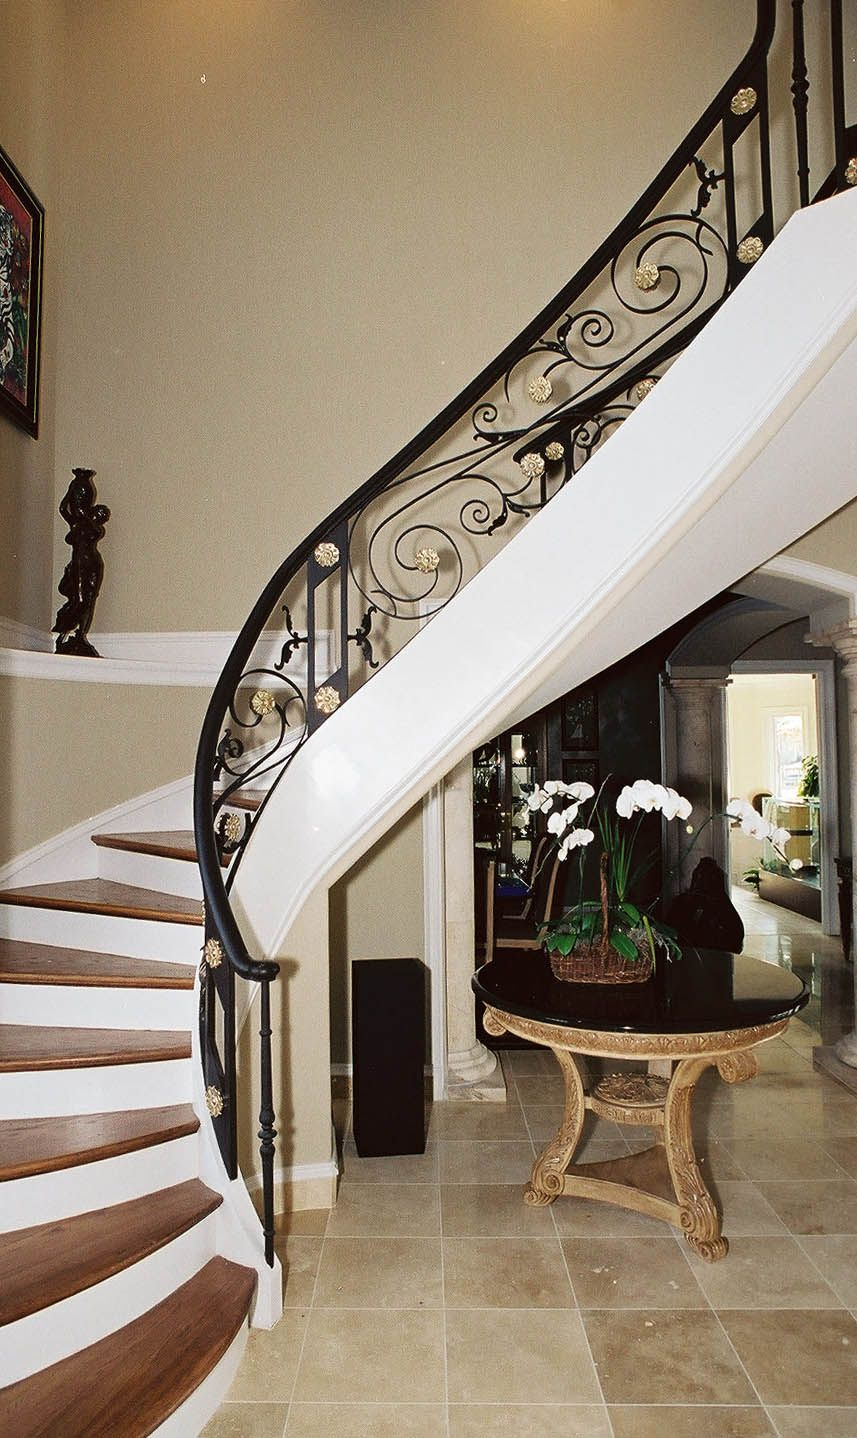 southern staircase staircases staircase design open staircase rh pinterest com